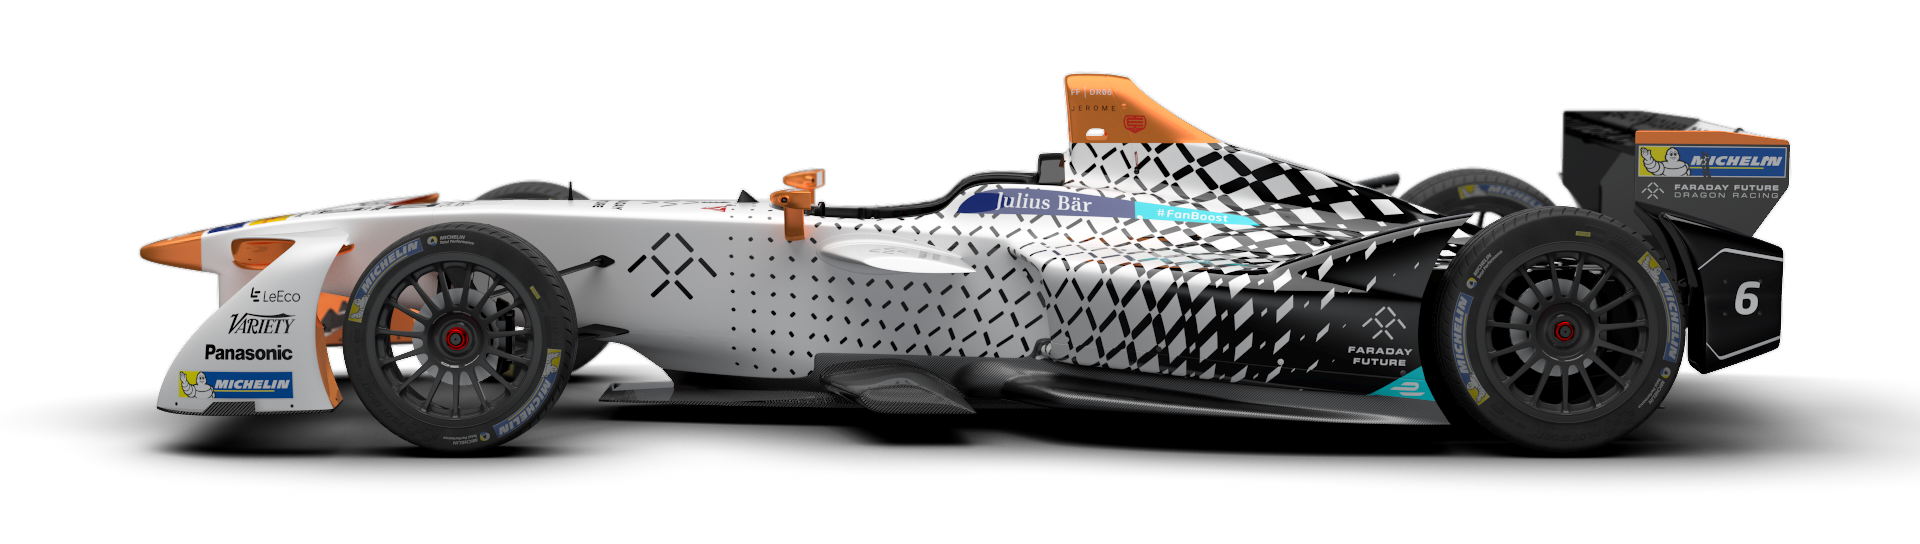 Faraday Future Dragon Racing Reveals Formula E Season Three Livery © Faraday Future